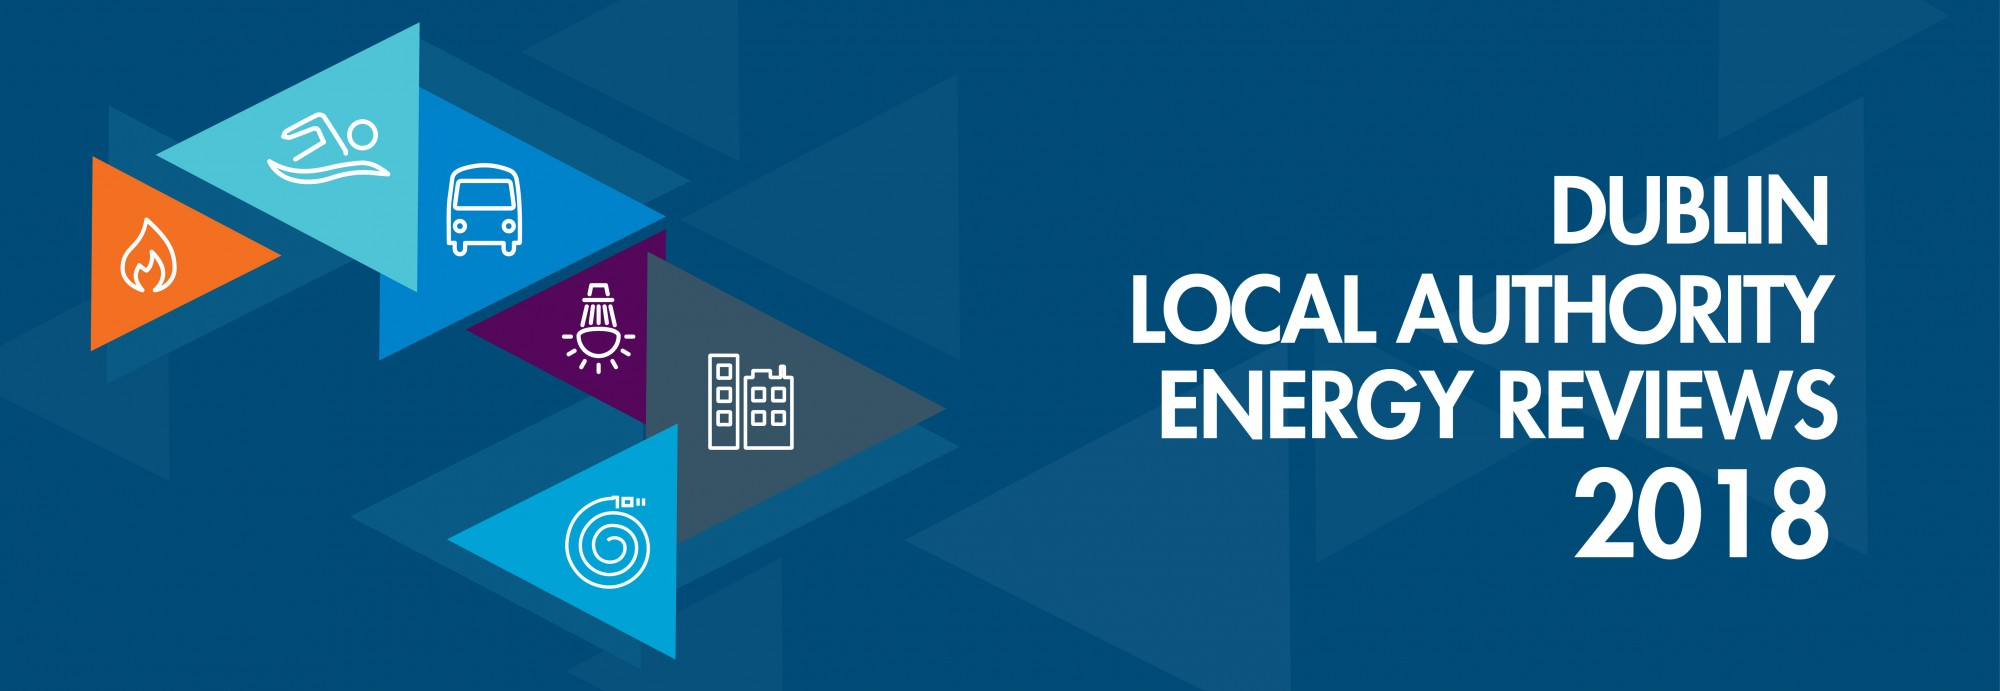 Dublin Local Authority Energy Reviews 2018